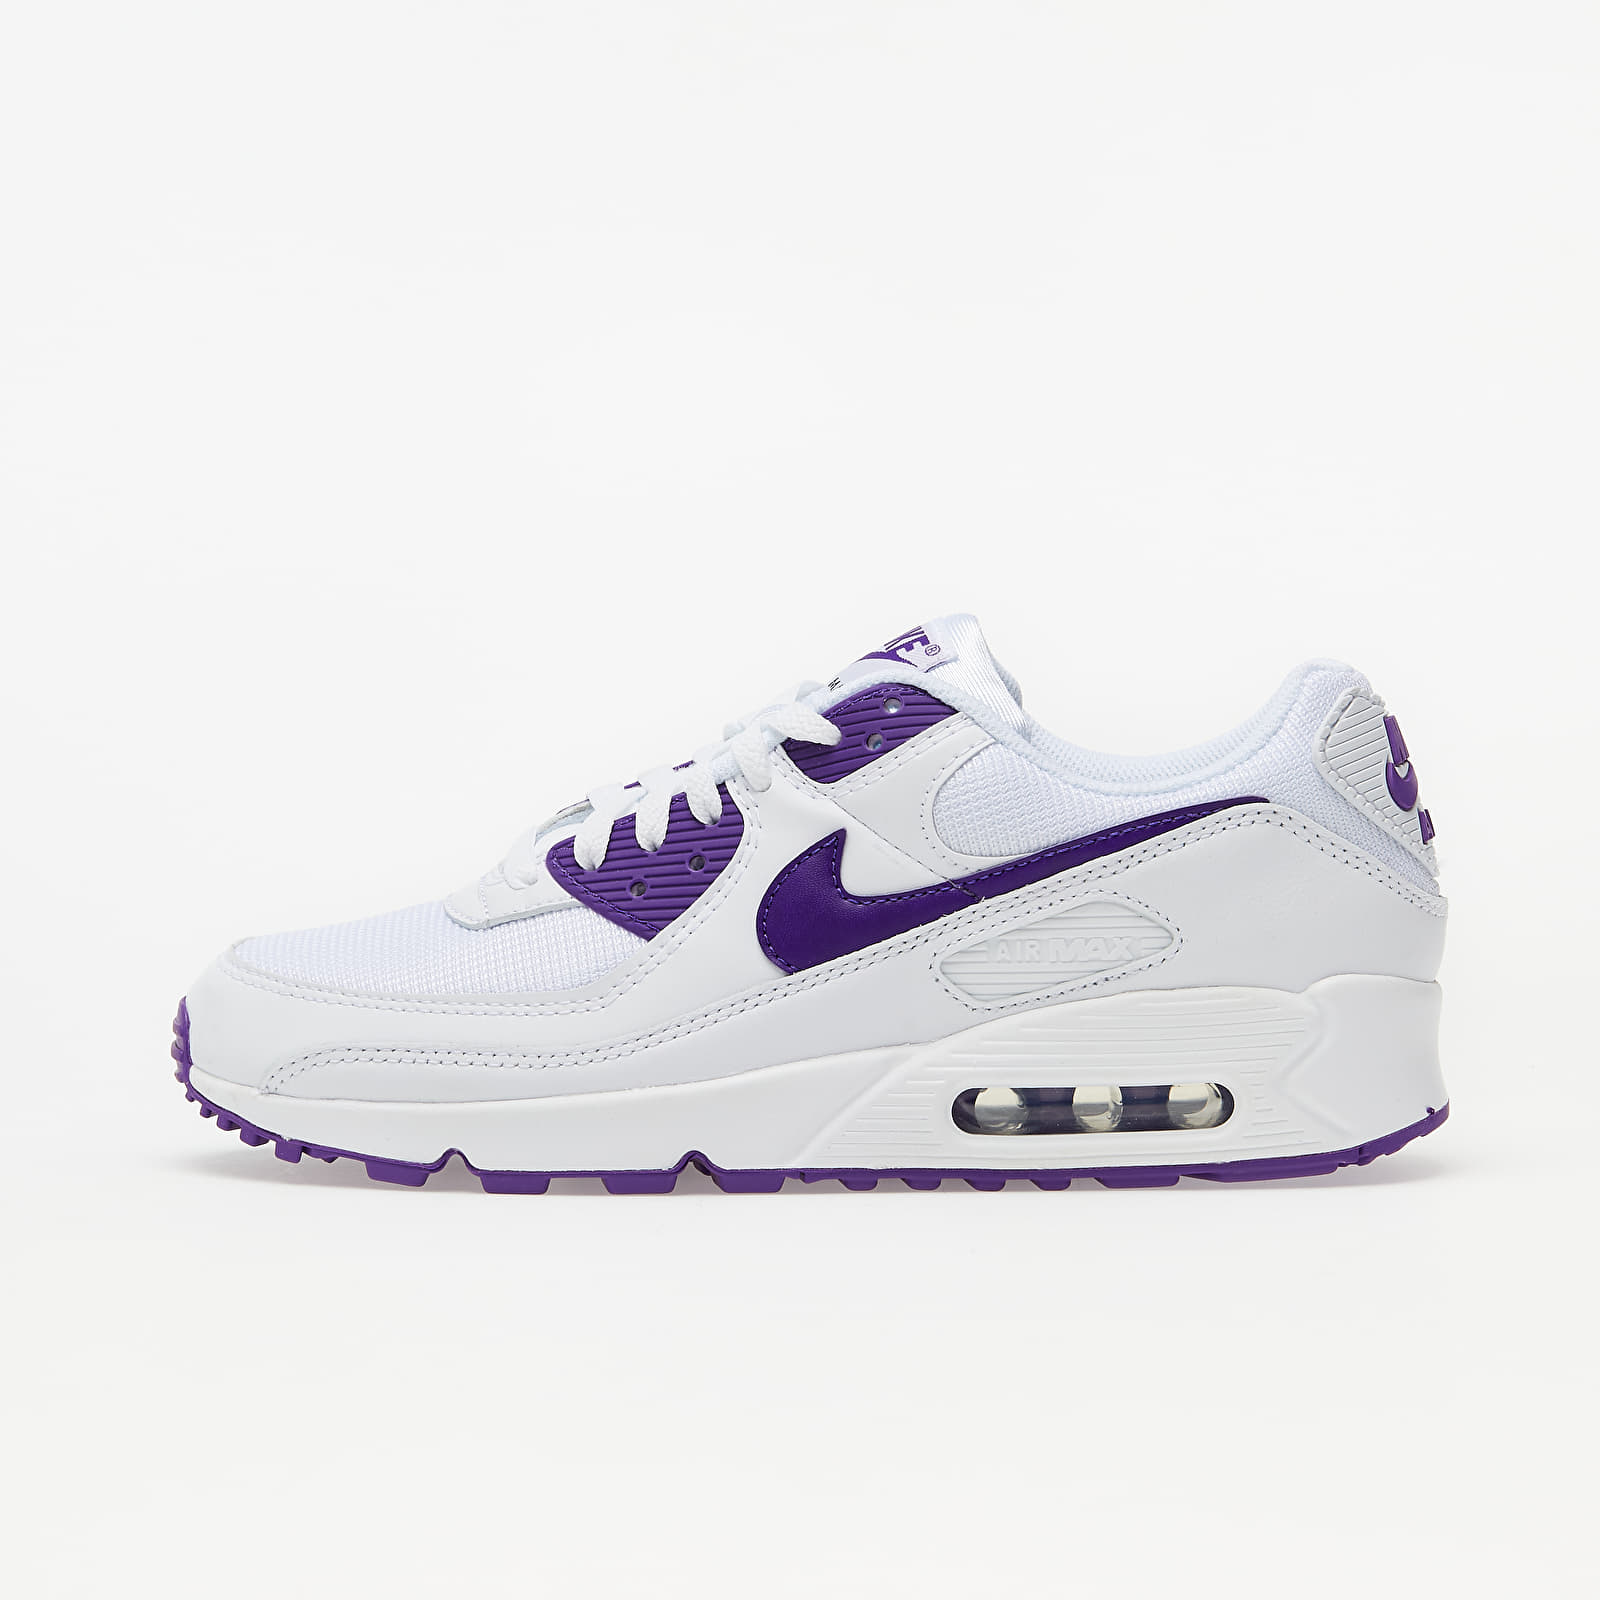 Nike Air Max 90 White/ Voltage Purple-Black EUR 42.5